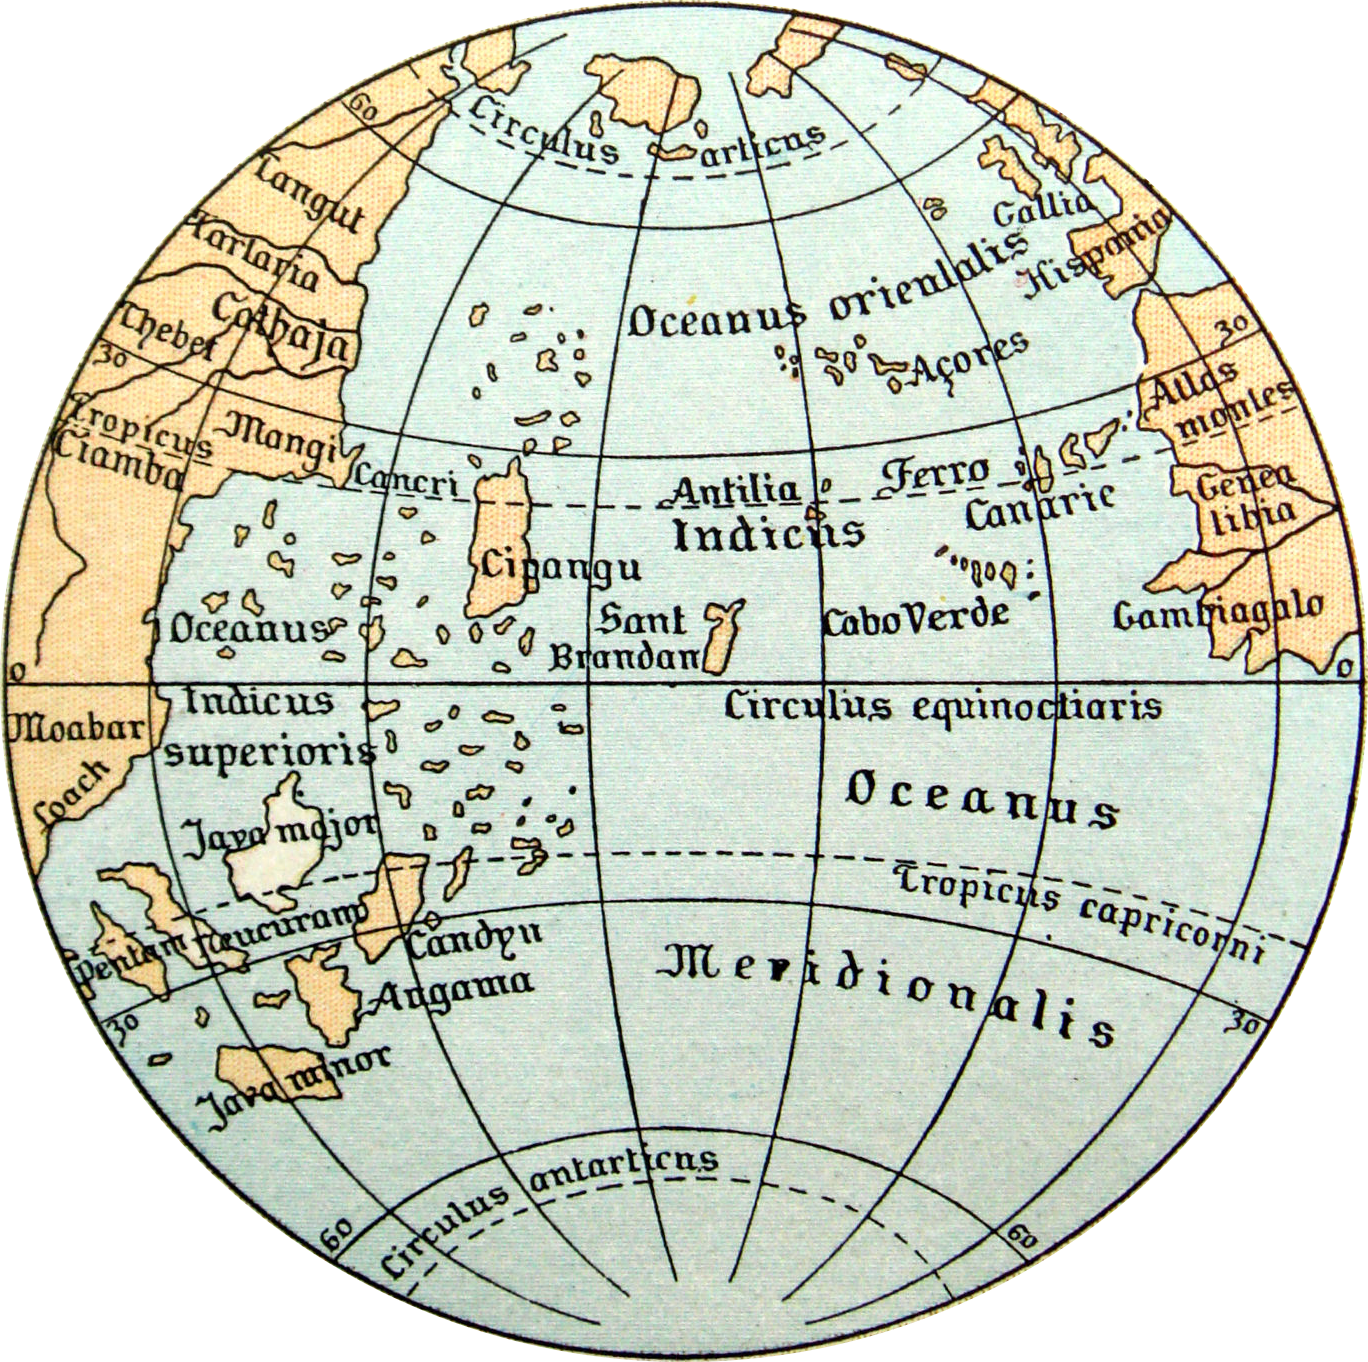 A reproduction of a pre-columbian map by Martin Behaim. There is an ocean between Europe and India. America is missing, as it had not yet been discovered.